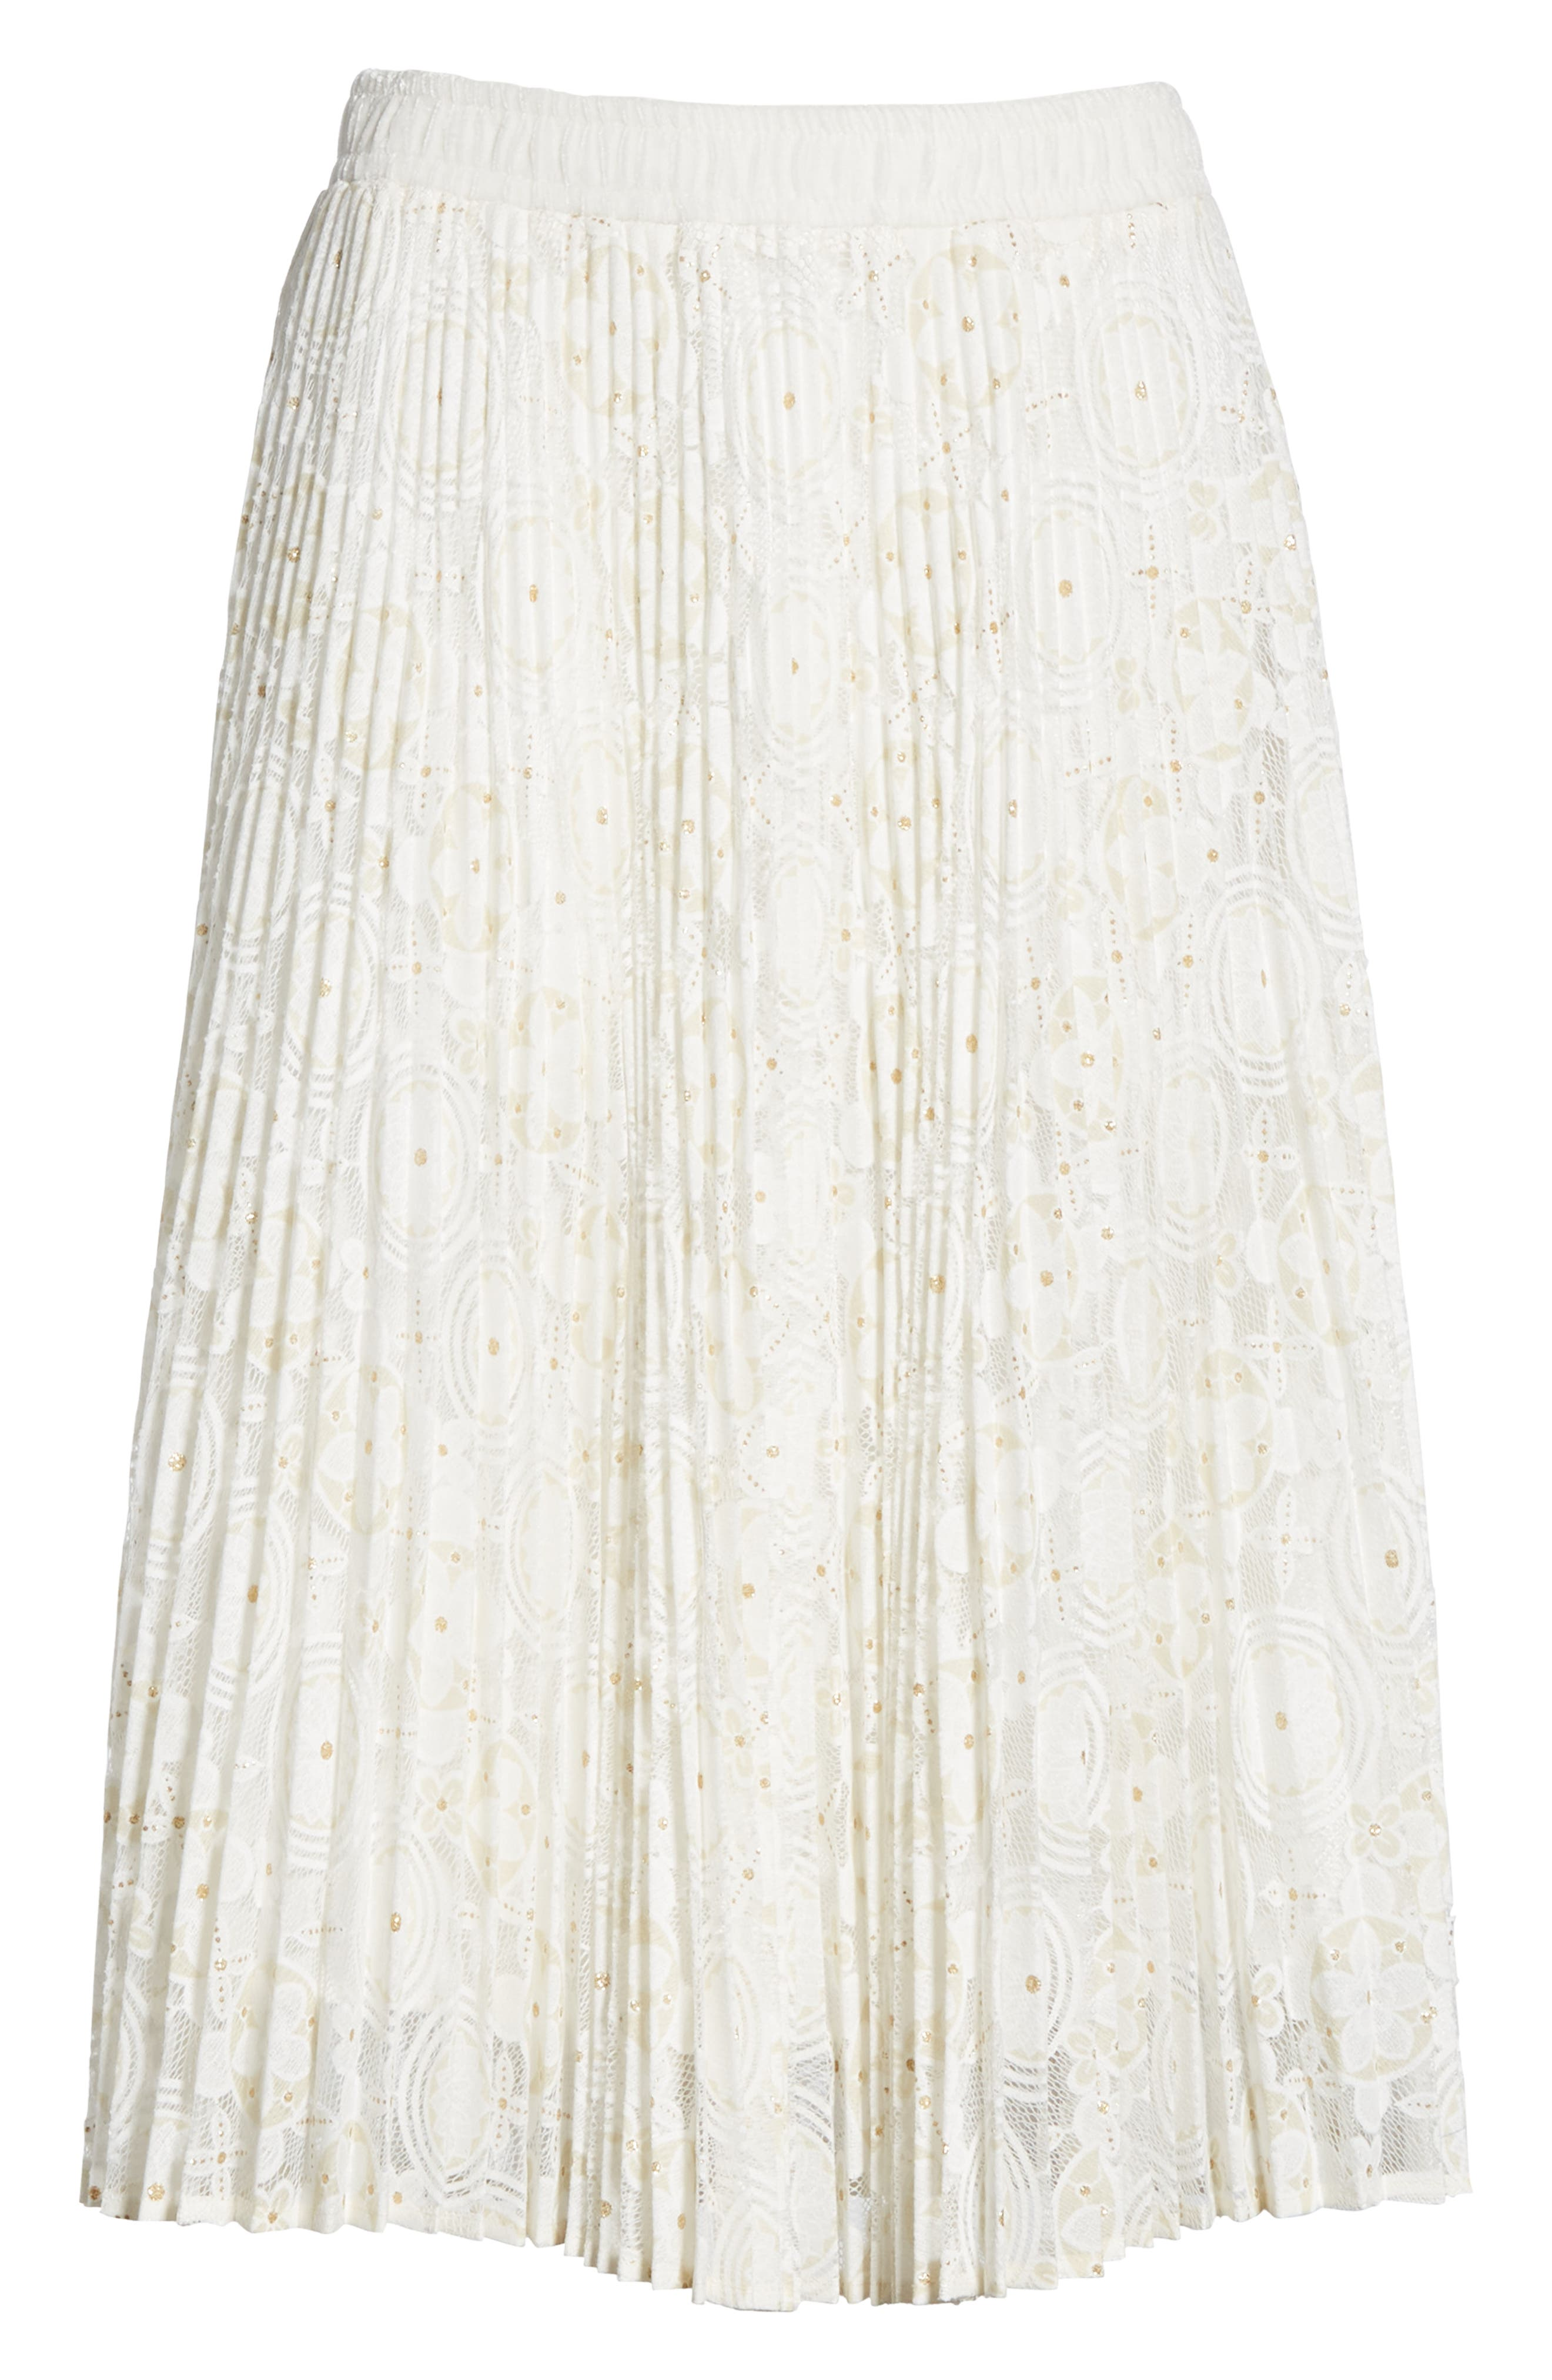 Metallic Floral Lace Pleated Skirt,                             Alternate thumbnail 6, color,                             IVORY